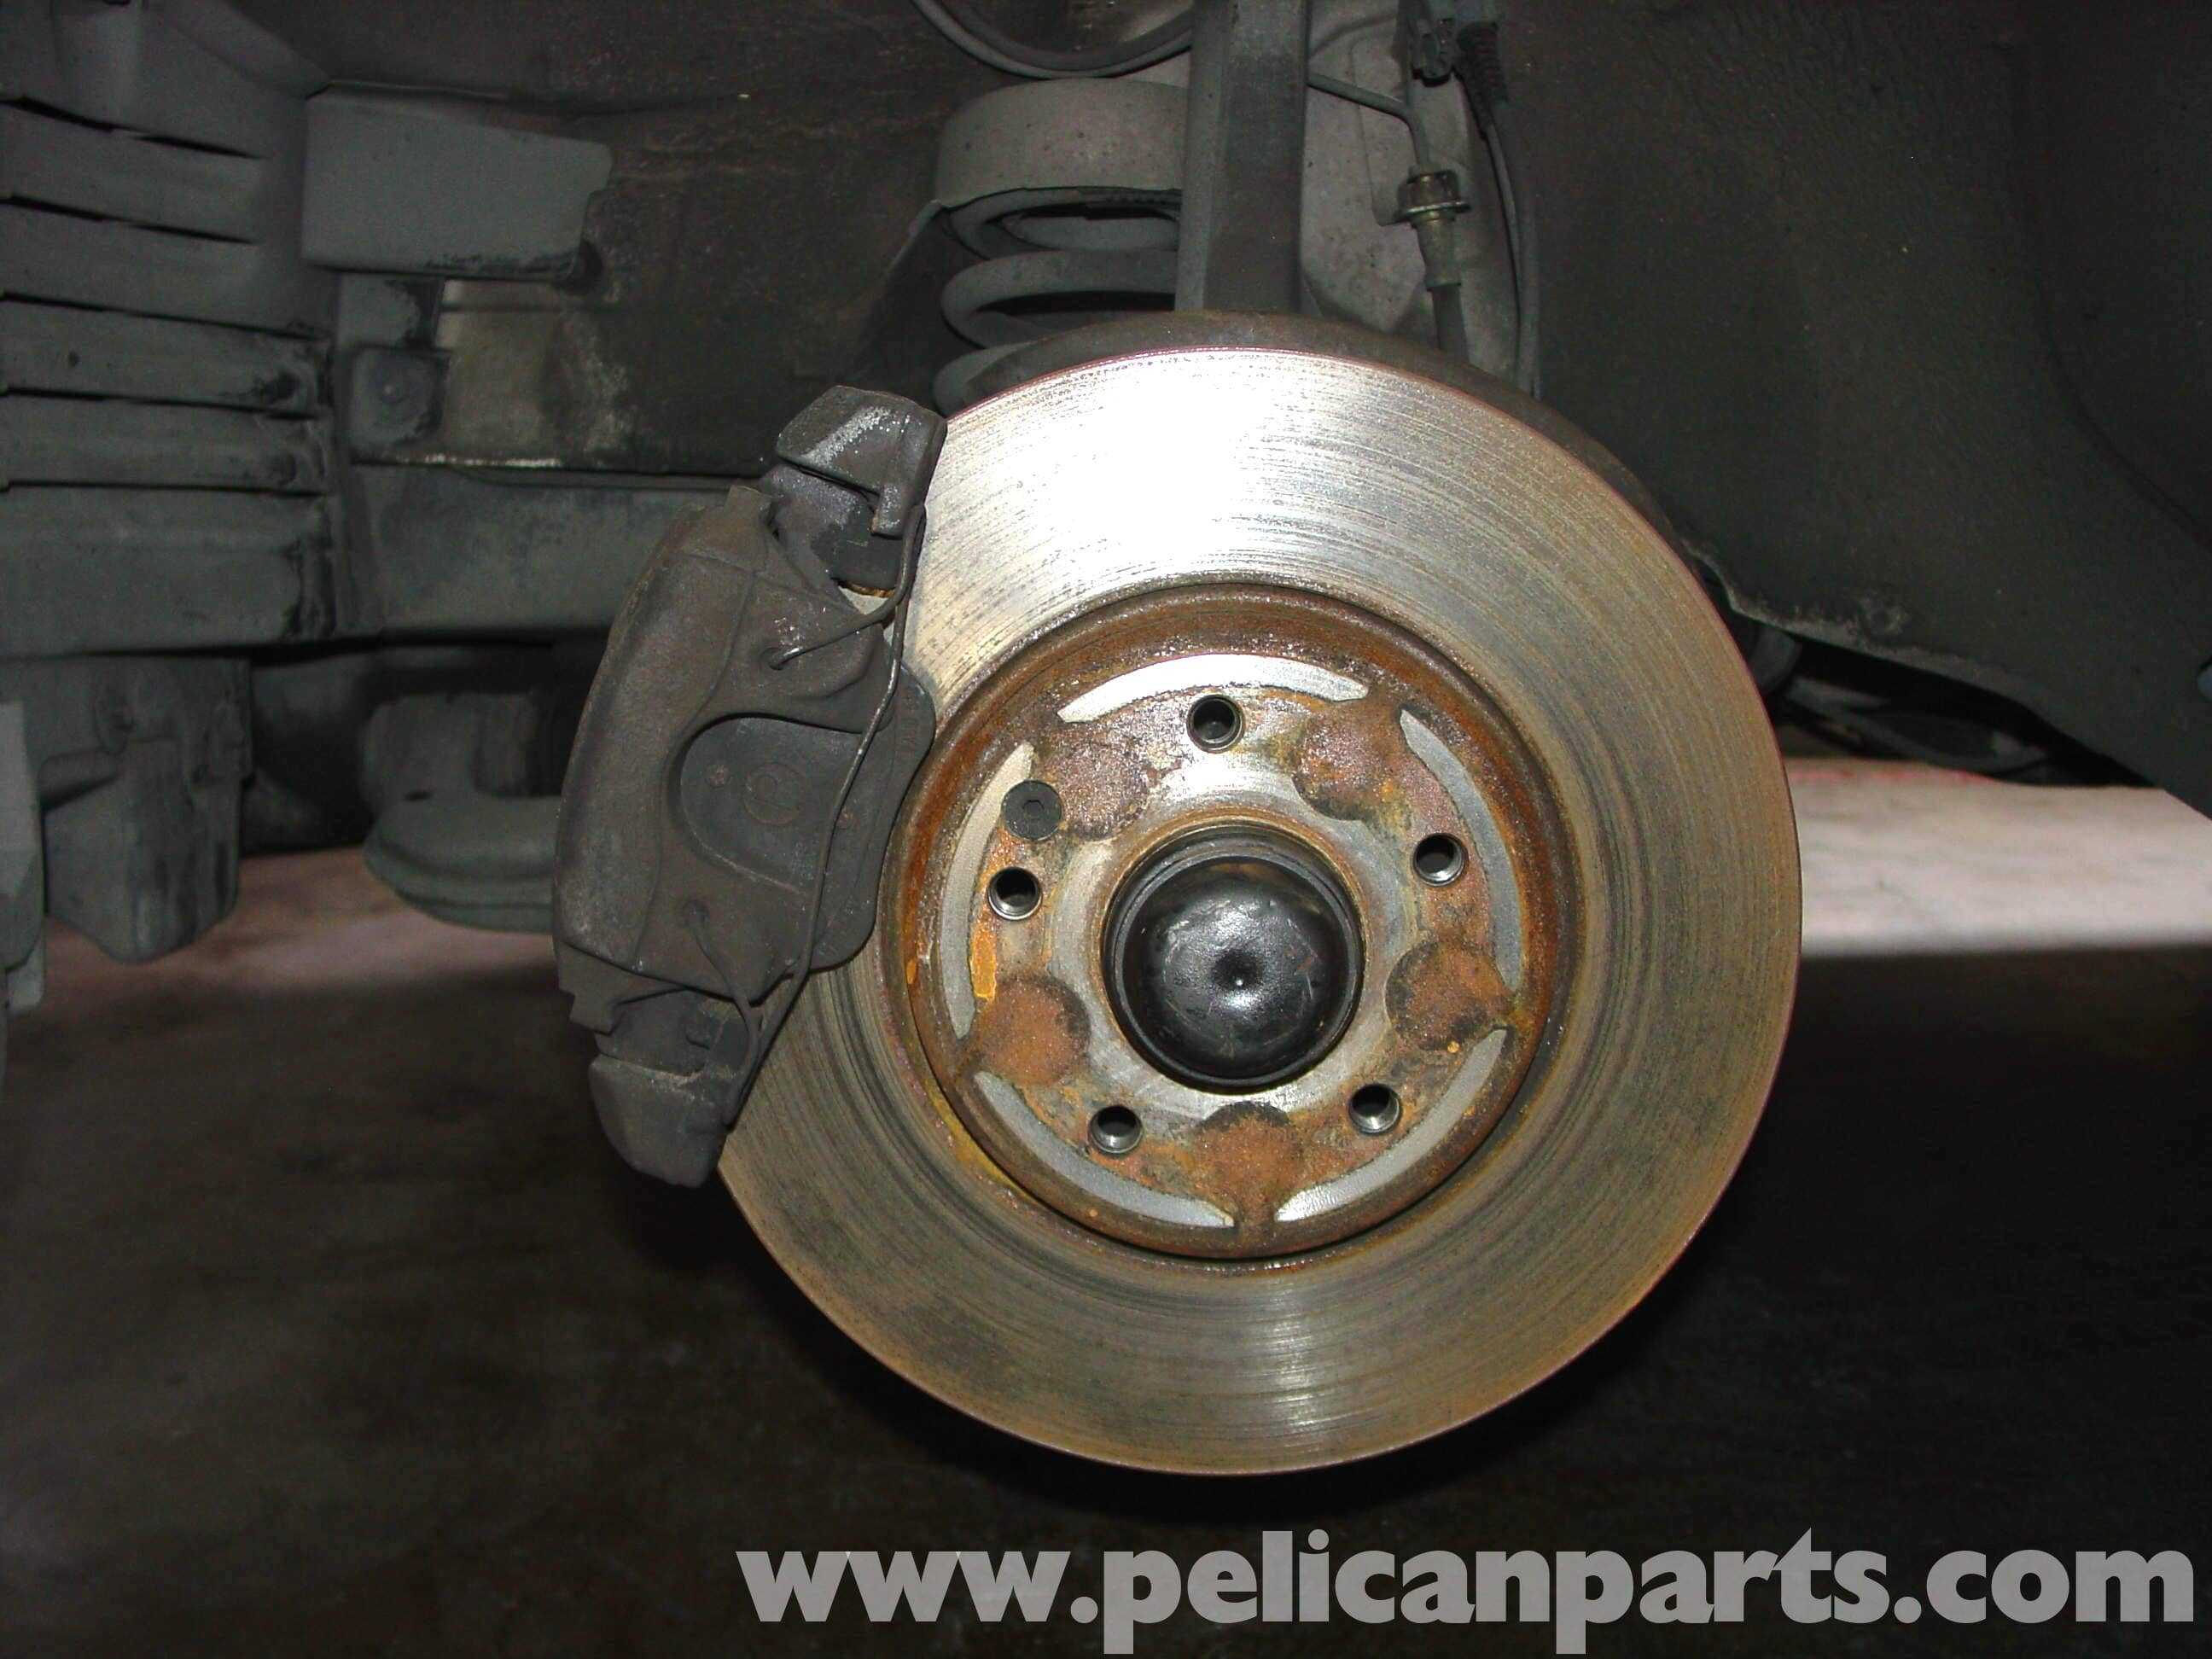 Mercedes benz w210 front brake pad disc replacement 1996 for Brake pads mercedes benz